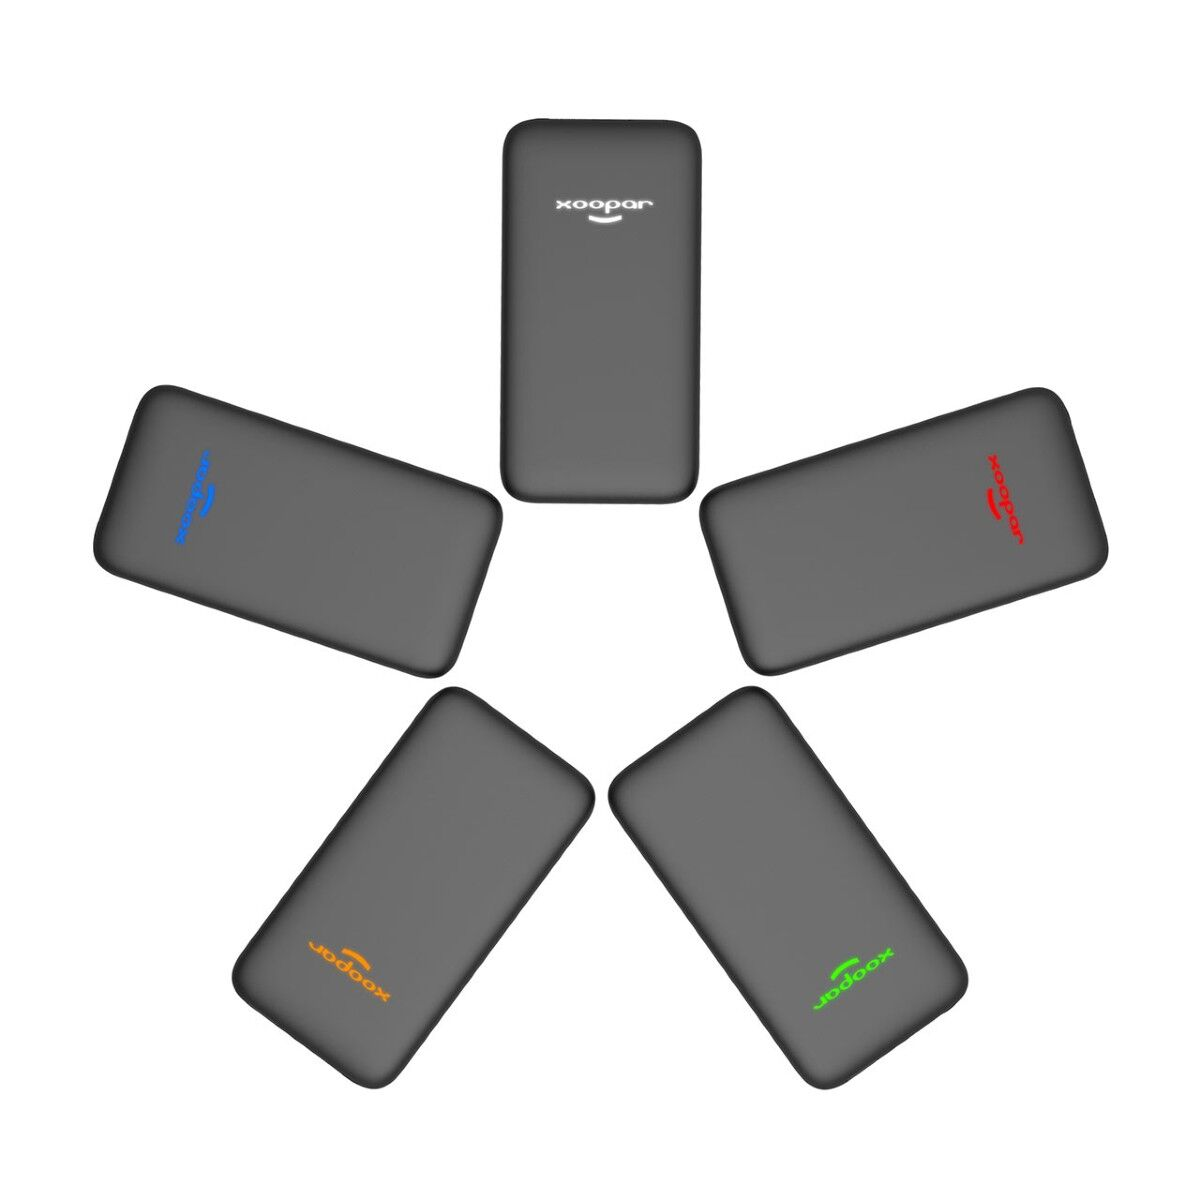 Xoopar Wireless Charger LED colours